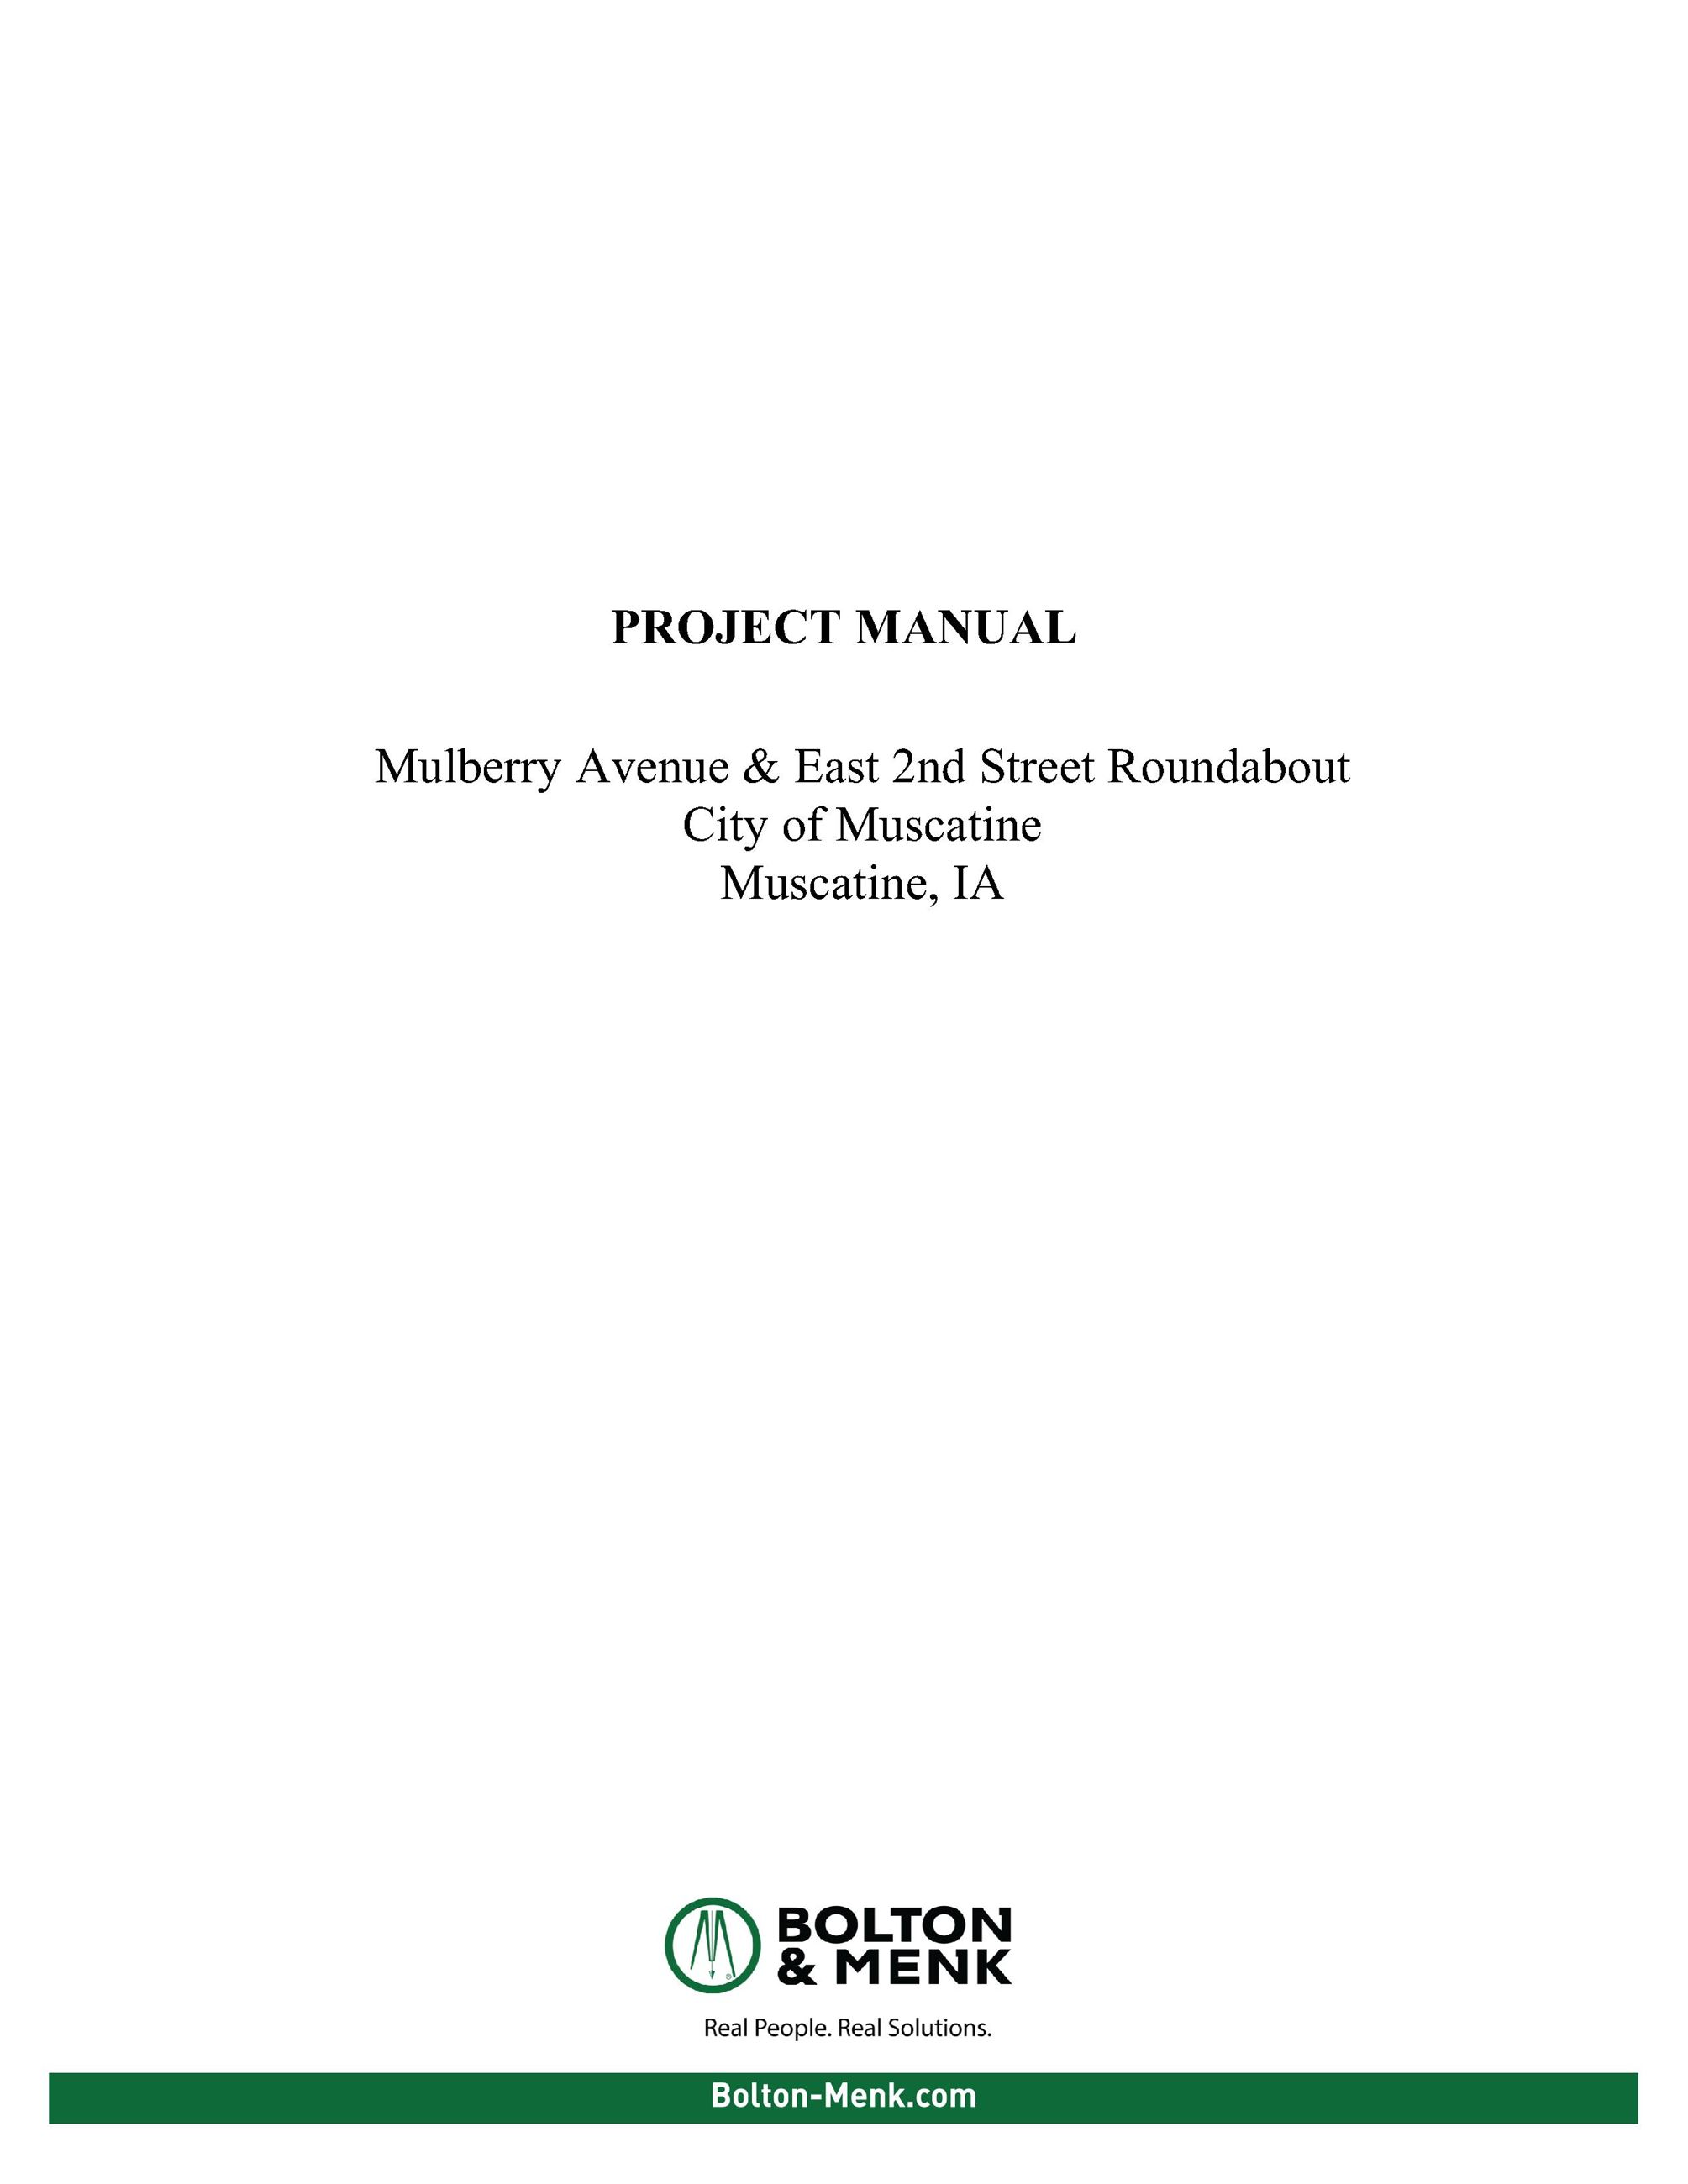 Mulberry Roundabout Project Manual Cover Sheet (JPG)